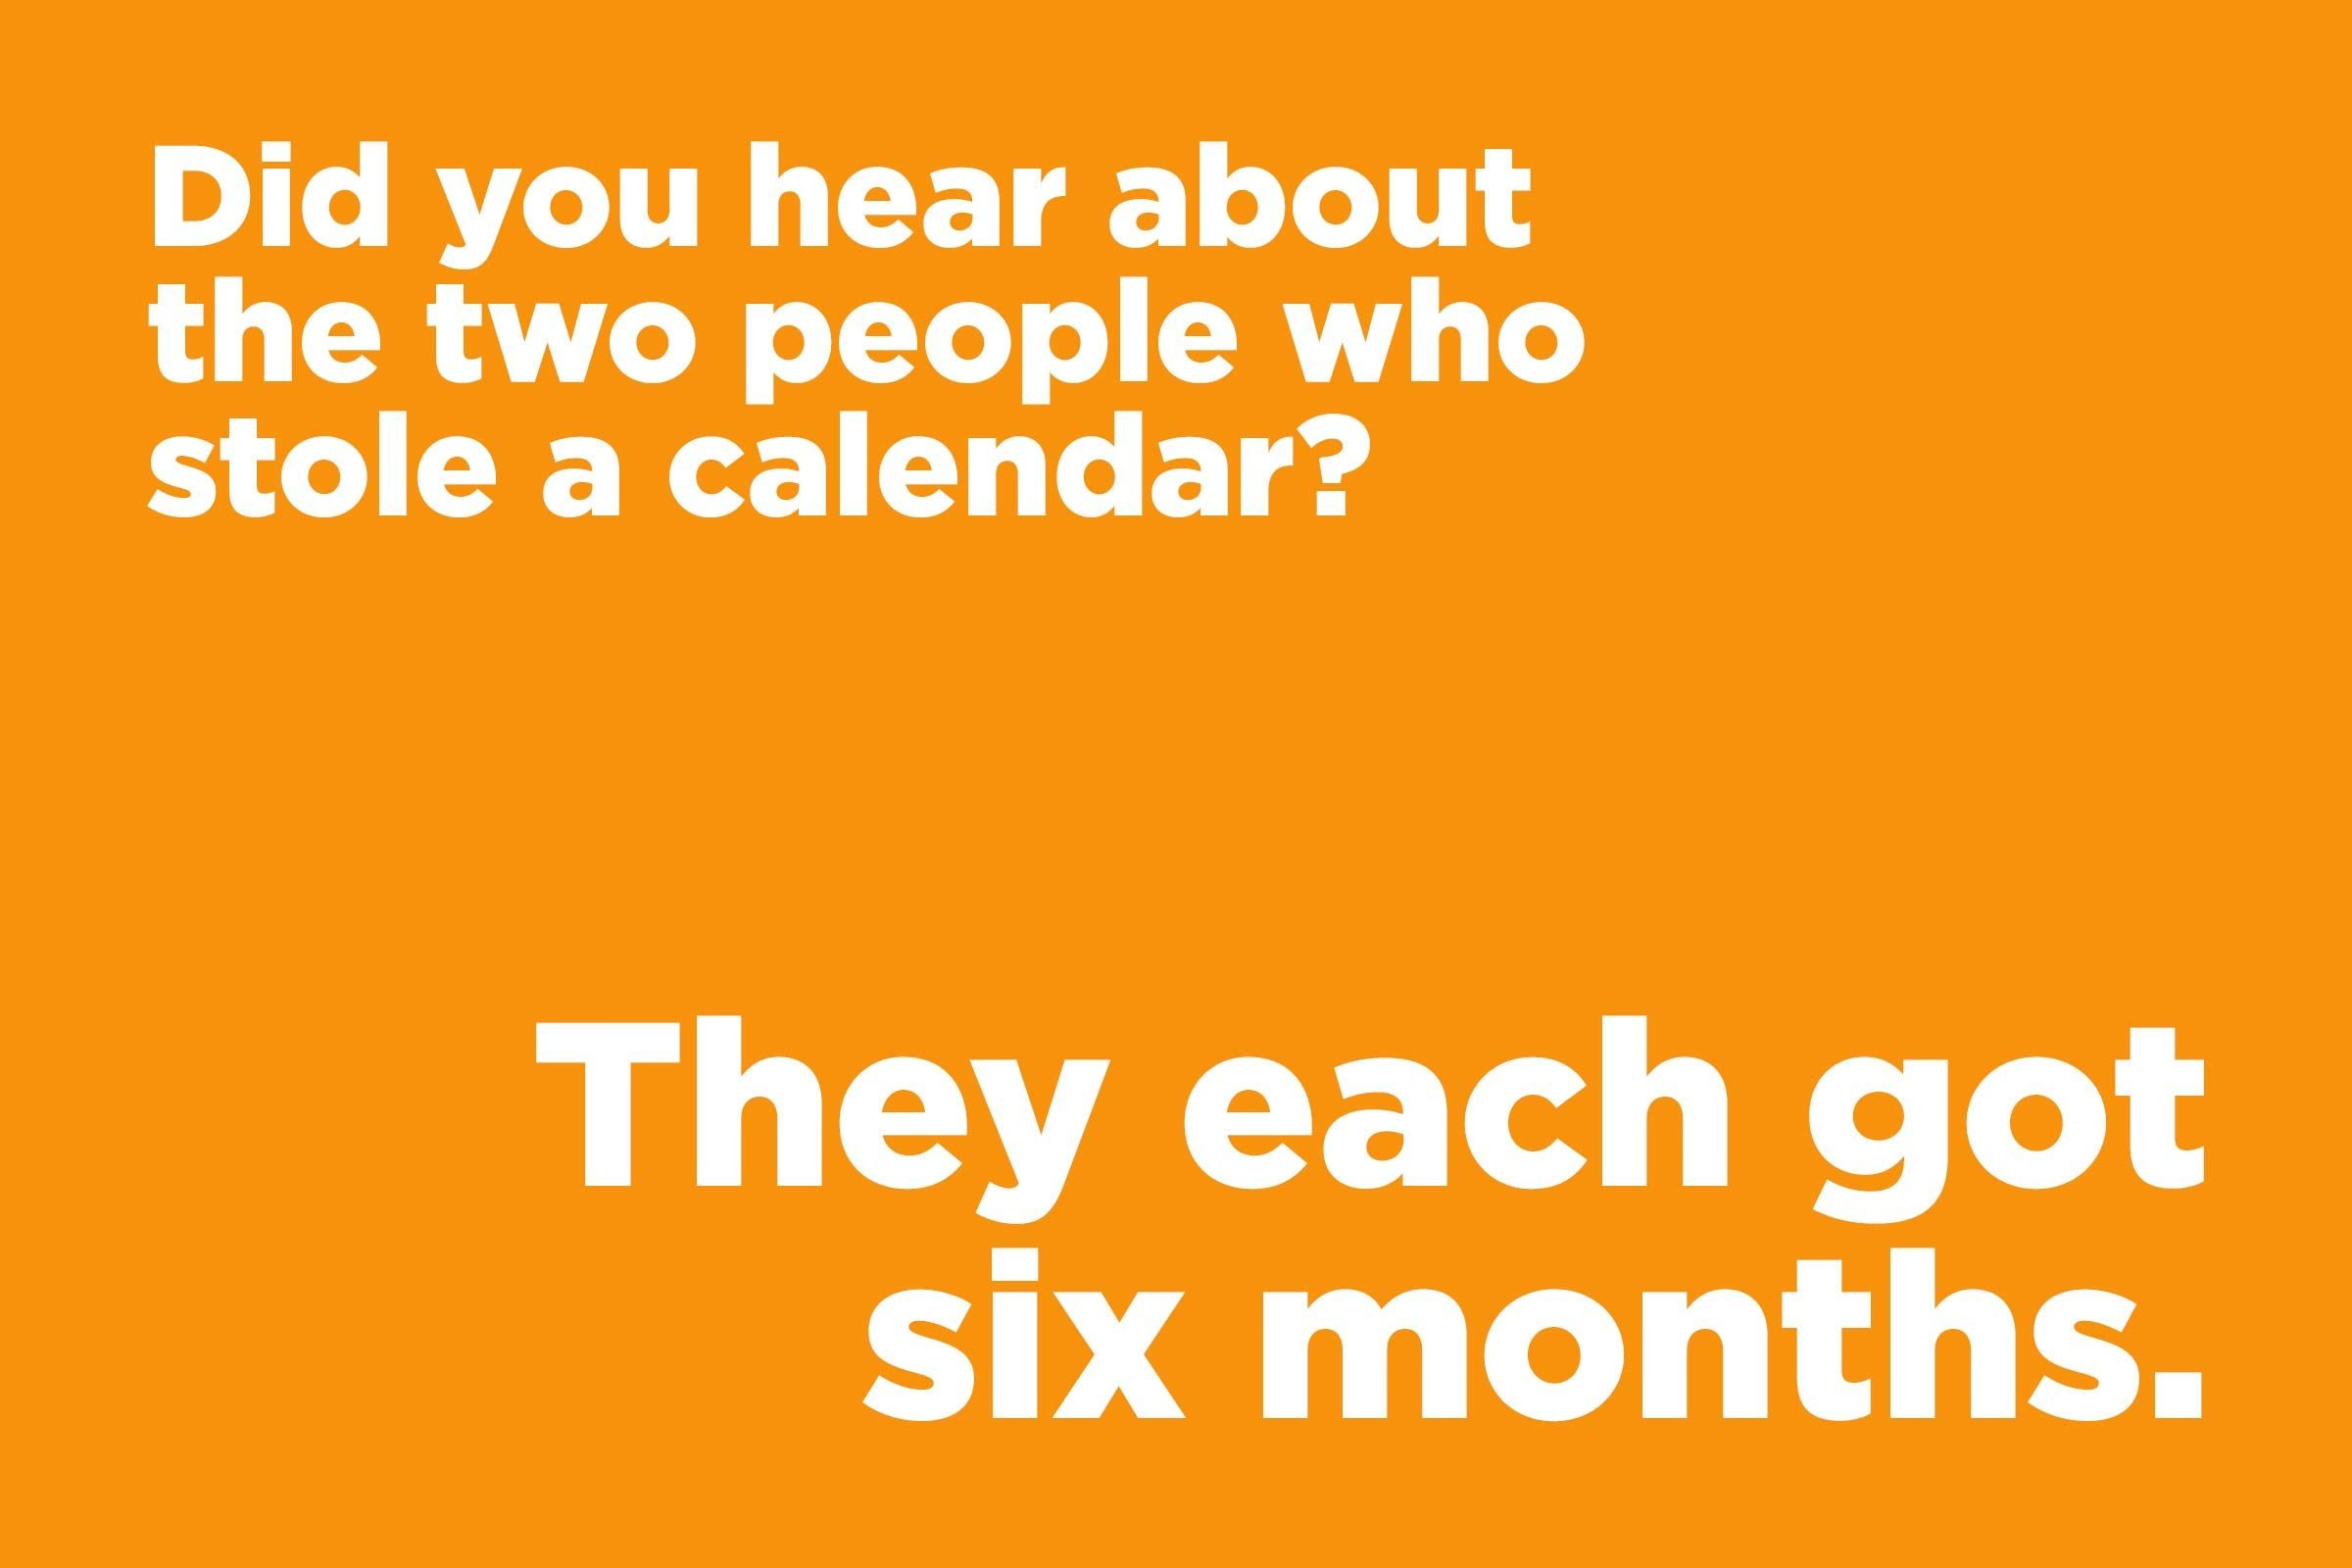 Did you hear about the two people who stole a calendar?